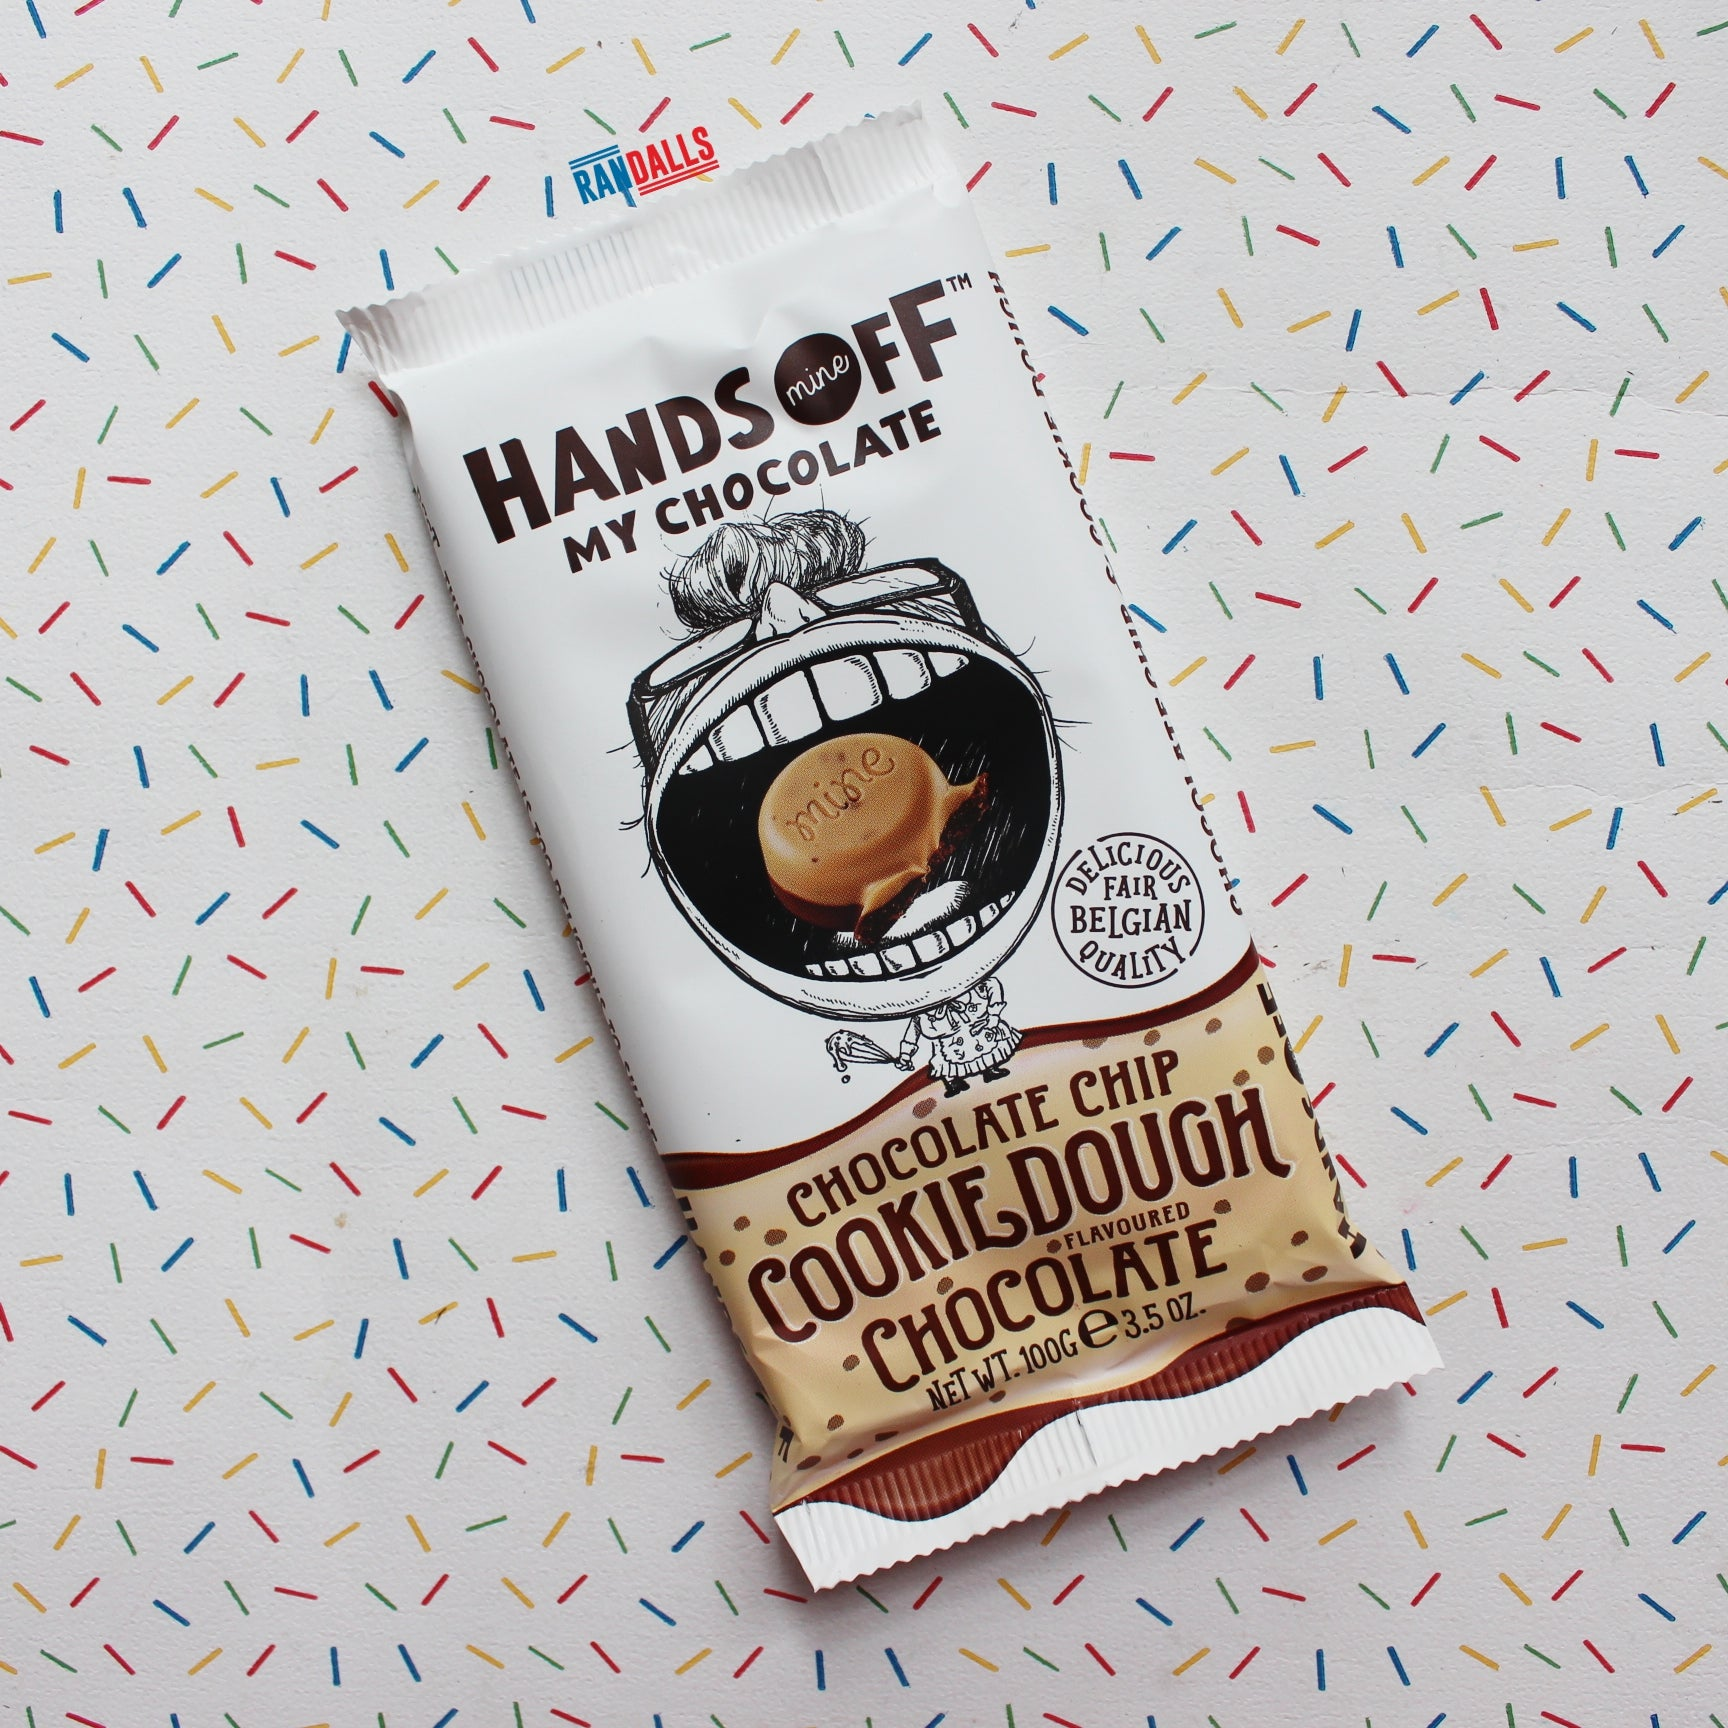 HANDS OFF MY CHOCOLATE CHOCOLATE CHIP COOKIE DOUGH (NETHERLANDS)